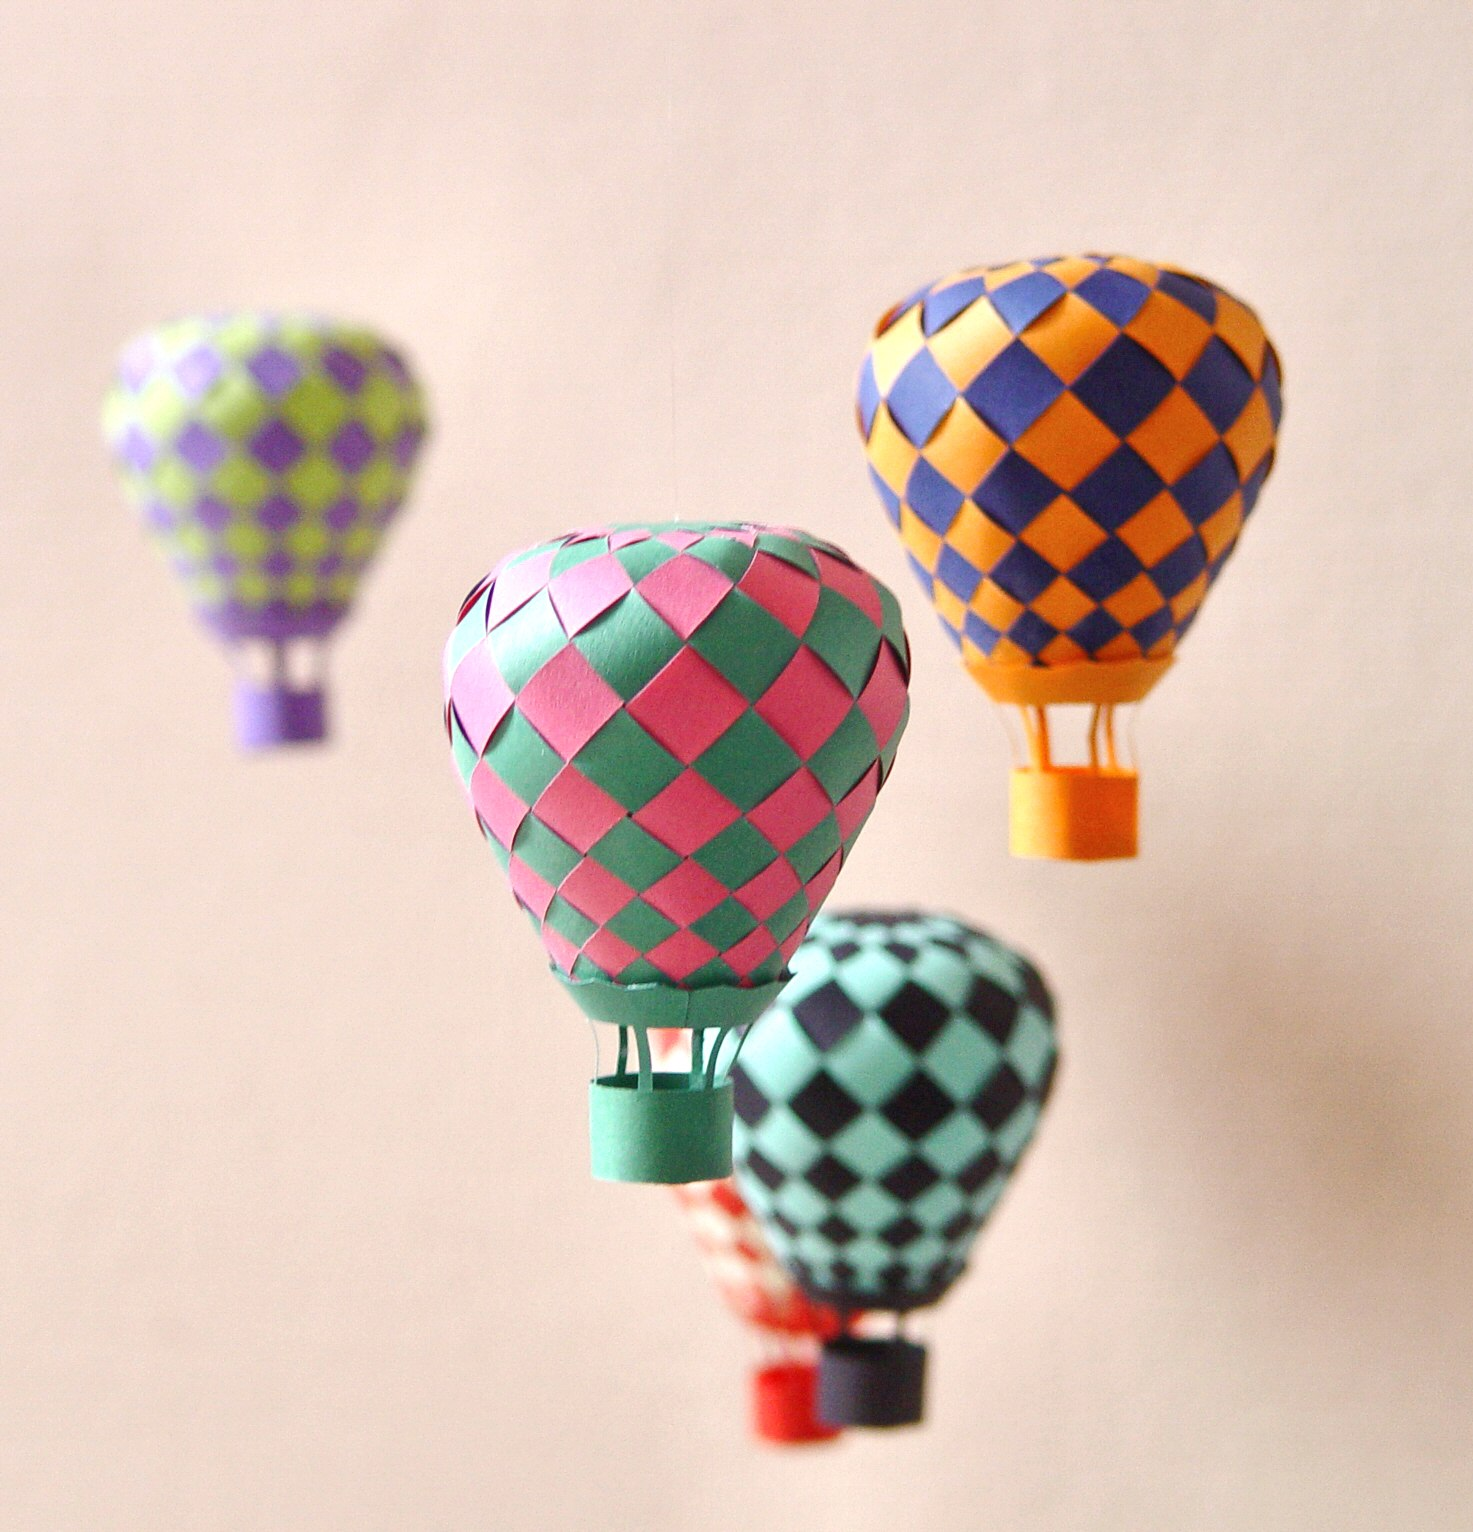 Extraordinary Creative DIY Paper Art Project -Colorful Hot Air Balloon Mobile homesthetics decor (6)